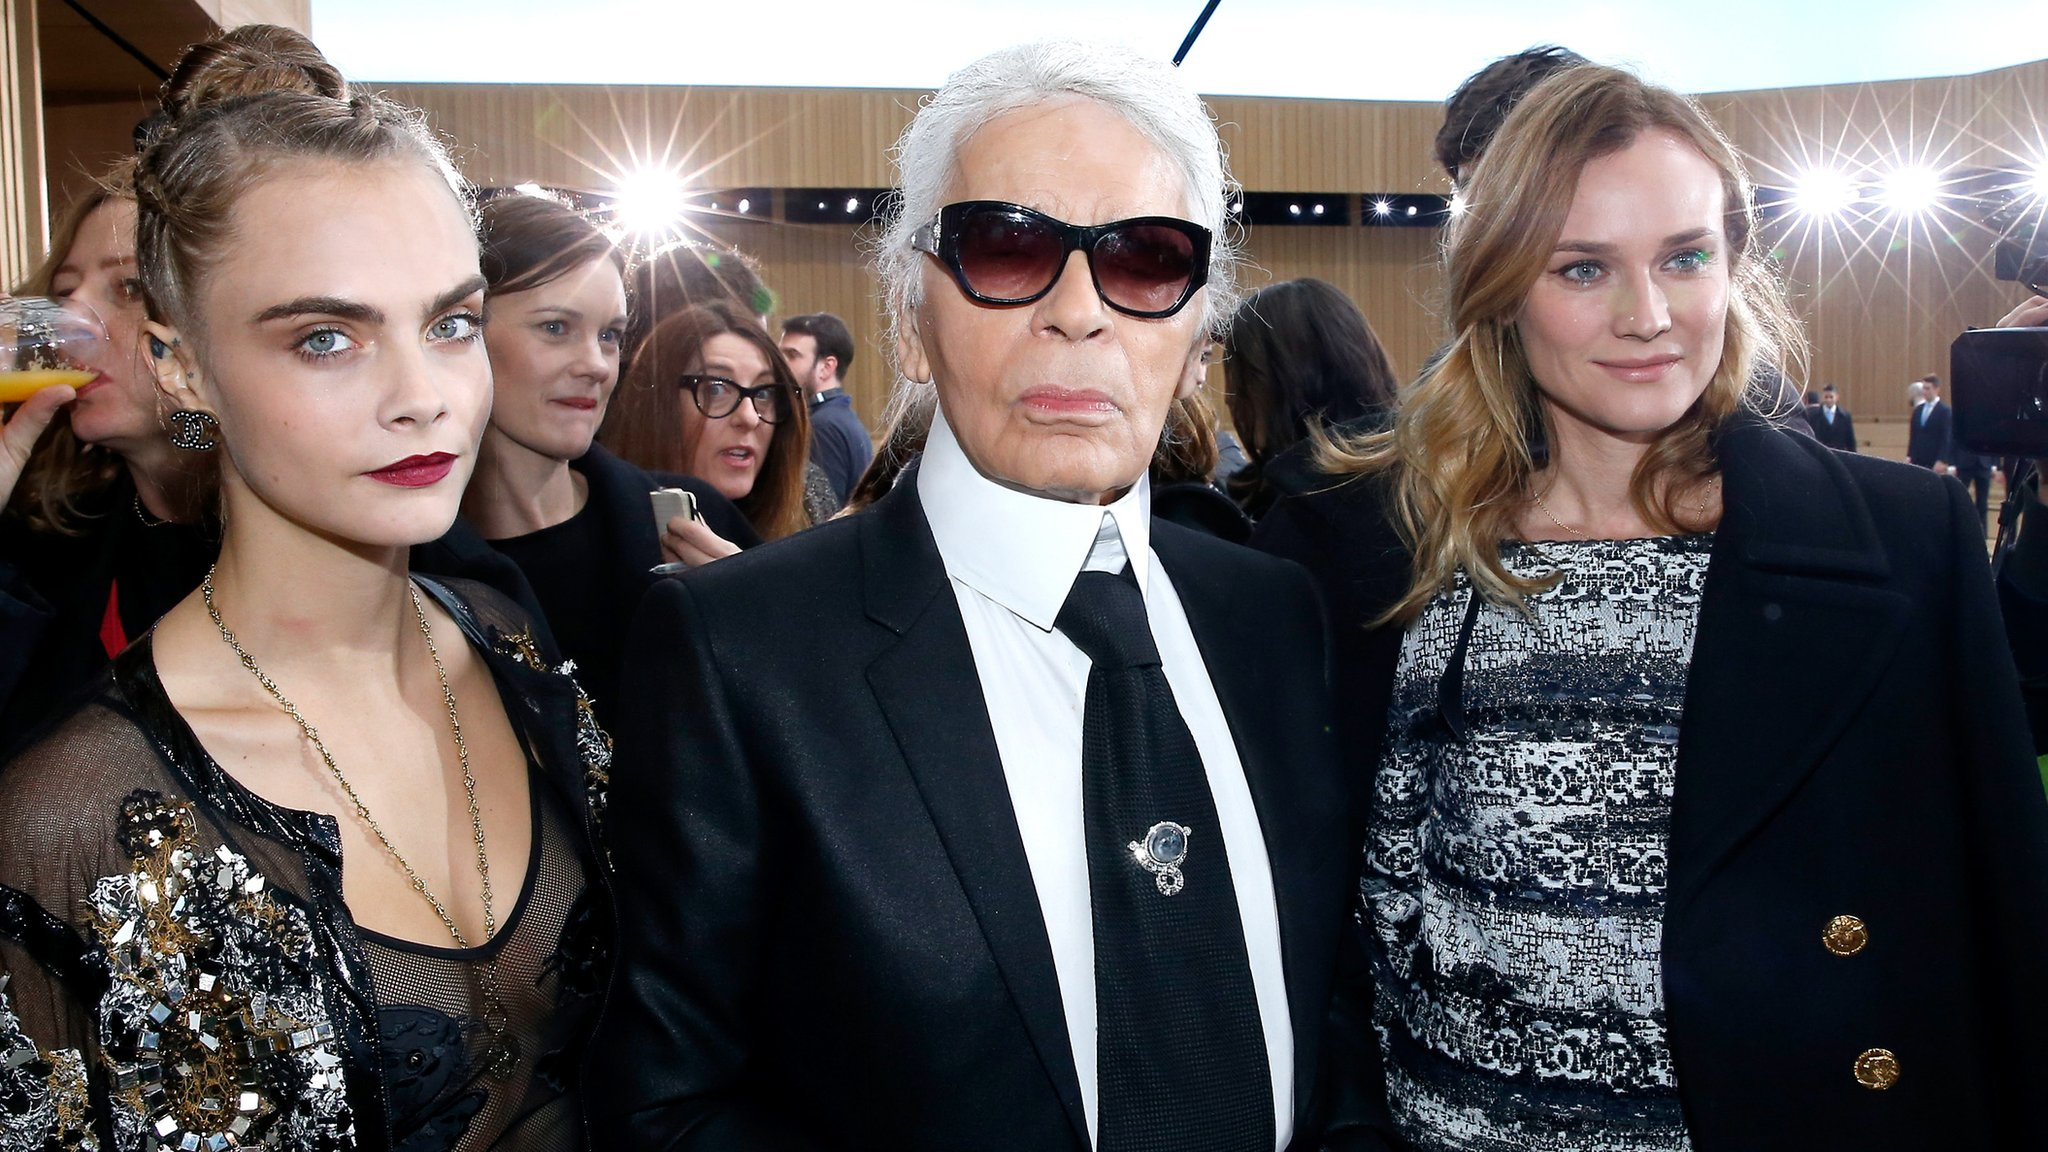 The controversial genius of Karl Lagerfeld